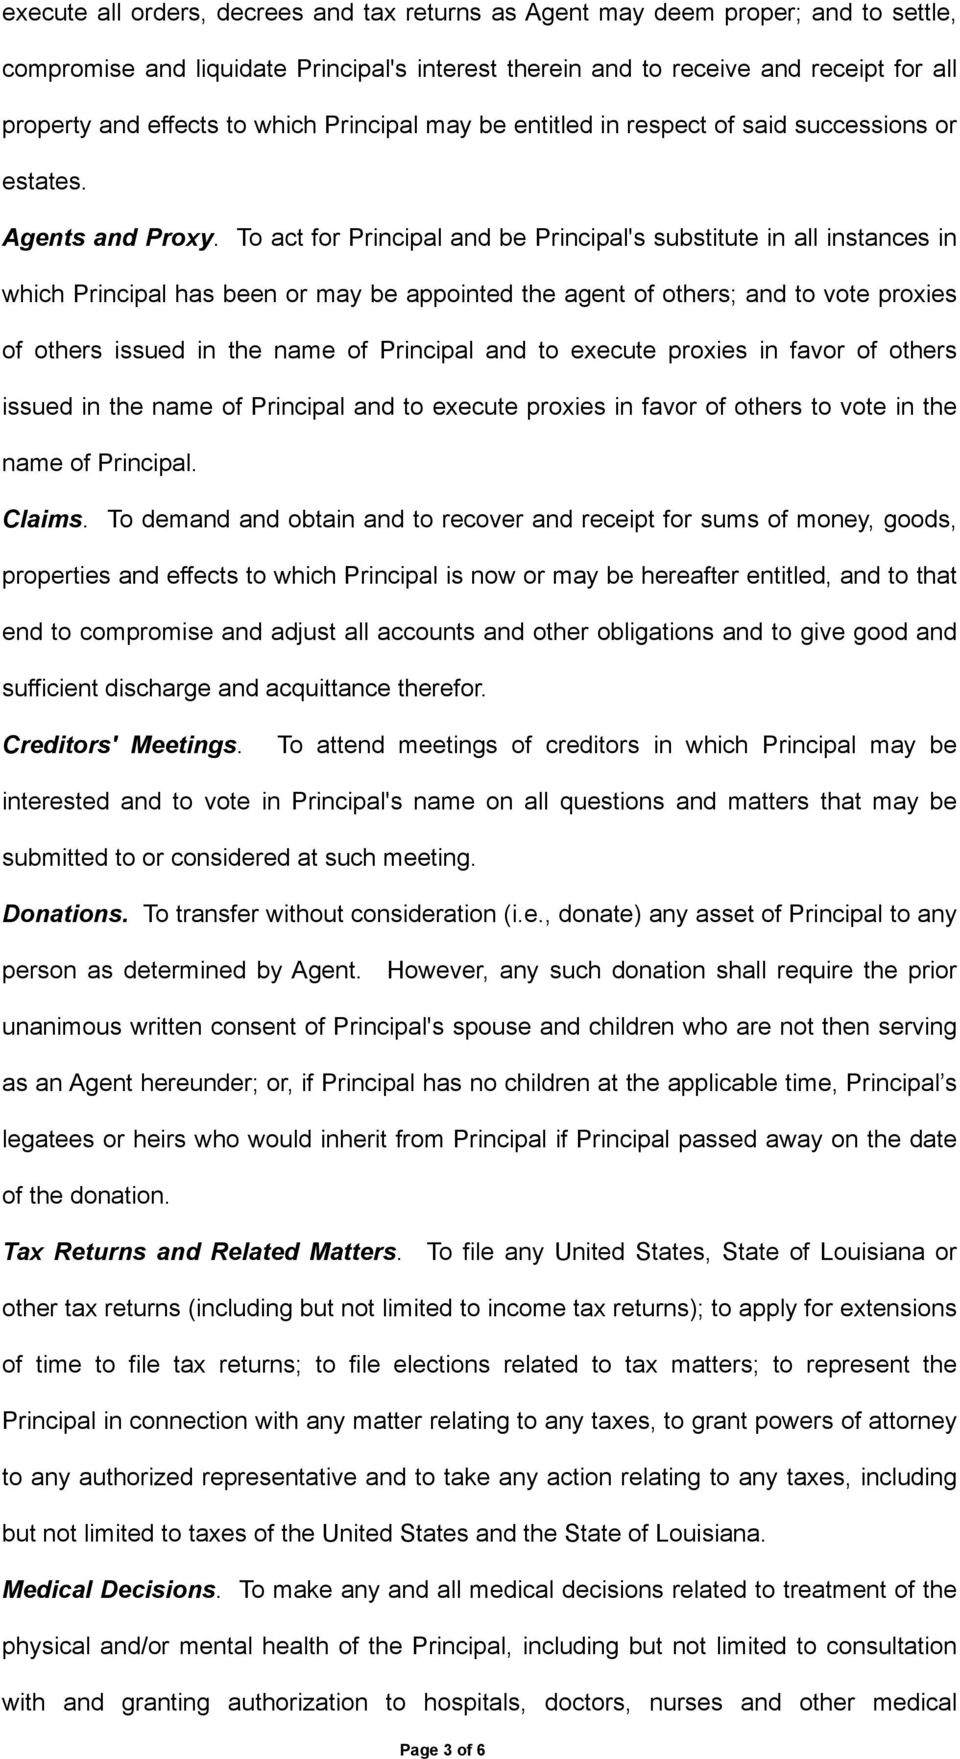 To act for Principal and be Principal's substitute in all instances in which Principal has been or may be appointed the agent of others; and to vote proxies of others issued in the name of Principal